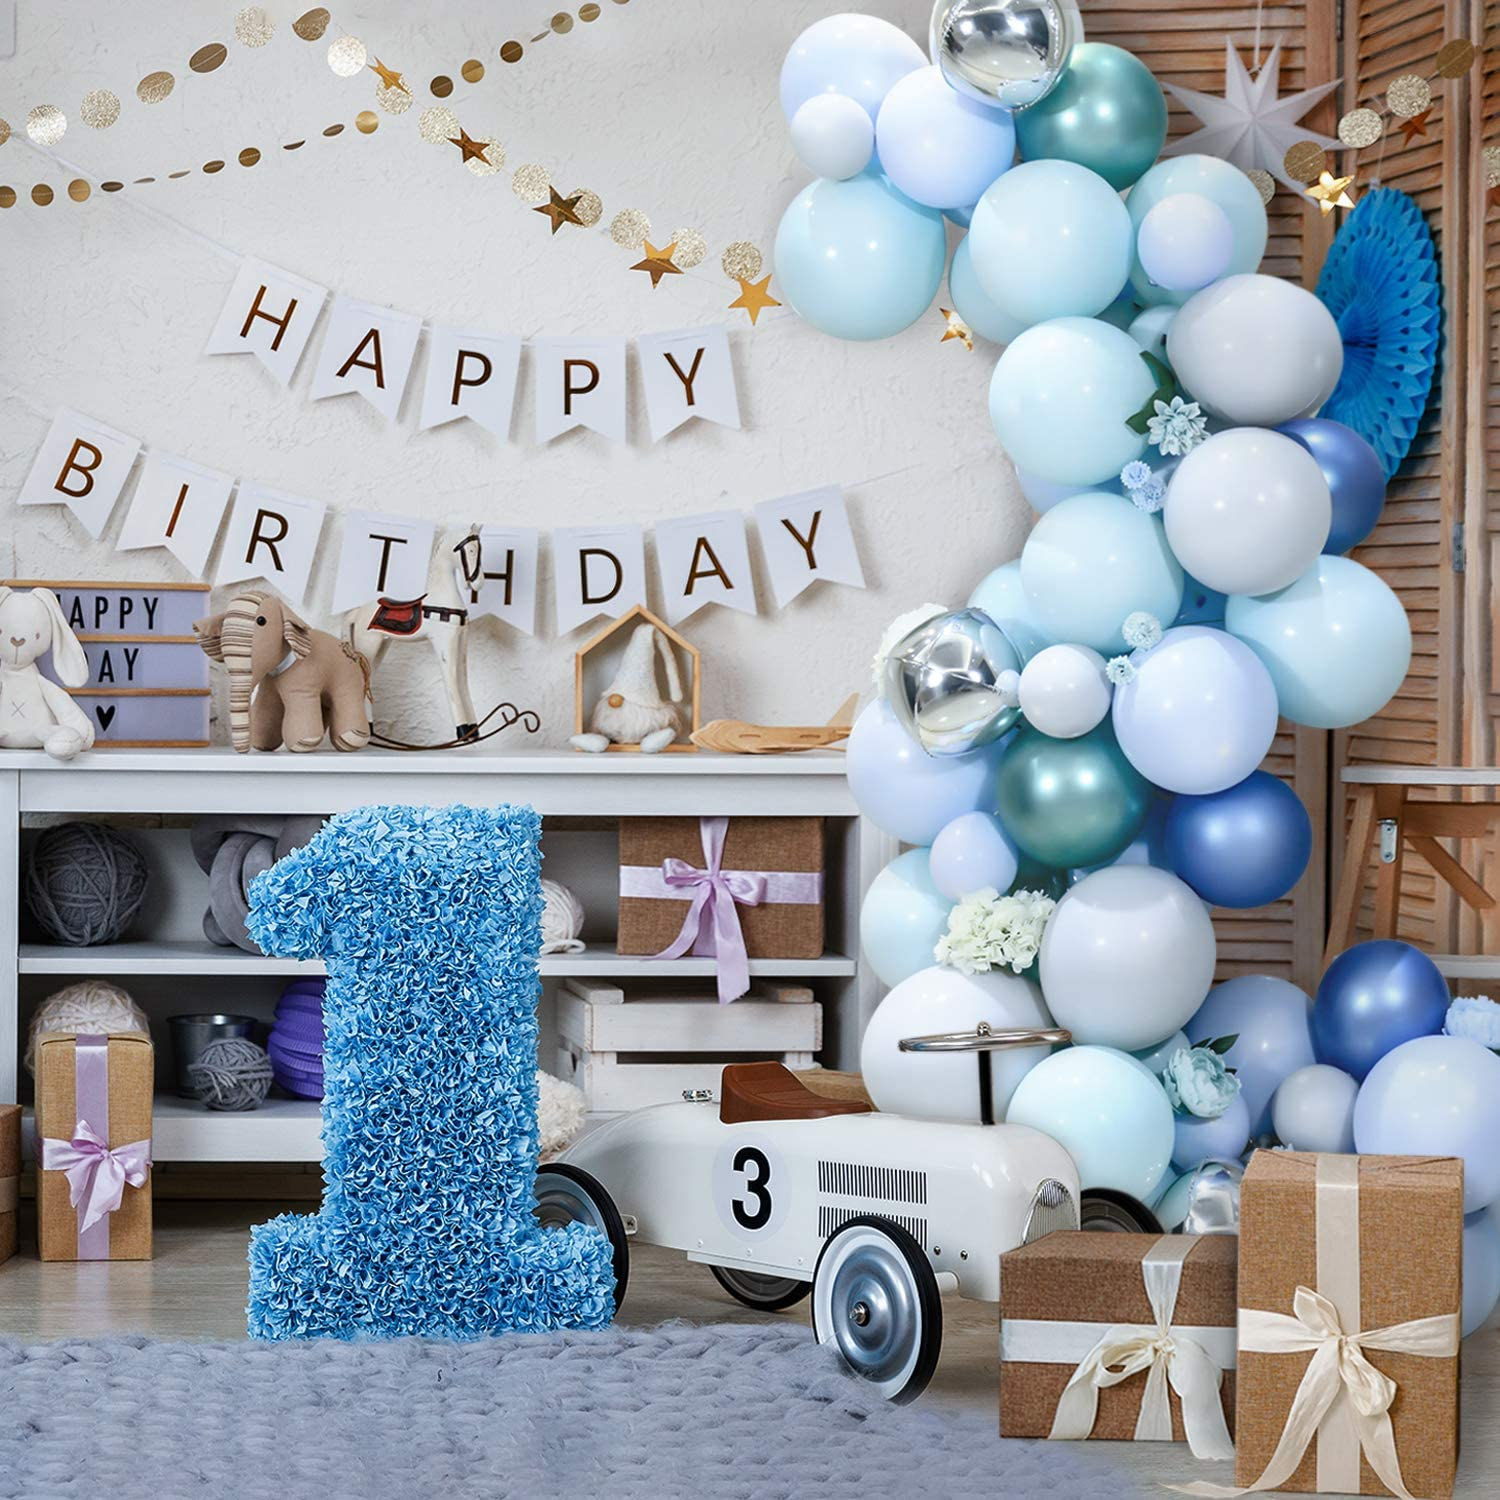 Balloon Arch Garland Kit, 75Pcs Blue Grey Green Latex Balloons with Tying Tool Strip Tape Glue Point Dots for Wedding Baby Shower Birthday Party Home Decor Event Backdrop